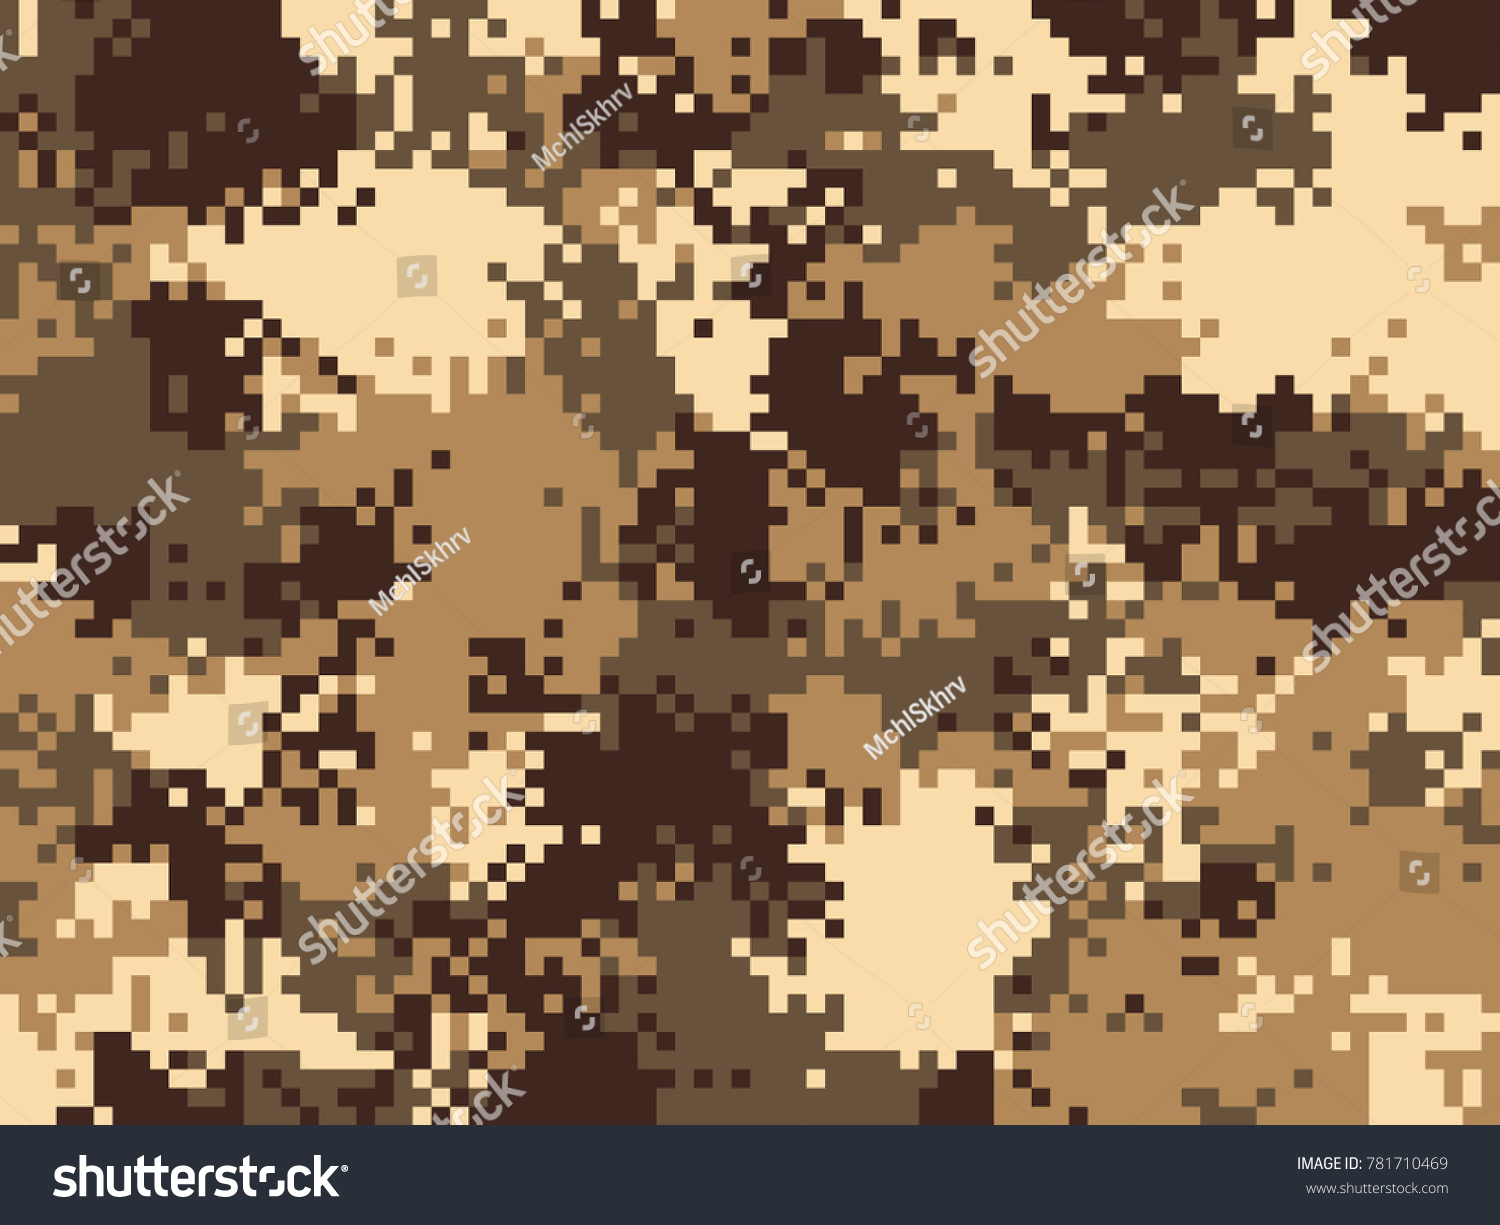 Digital pixel camouflage pattern military texture stock vector digital pixel camouflage pattern military texture stock vector 781710469 shutterstock toneelgroepblik Images